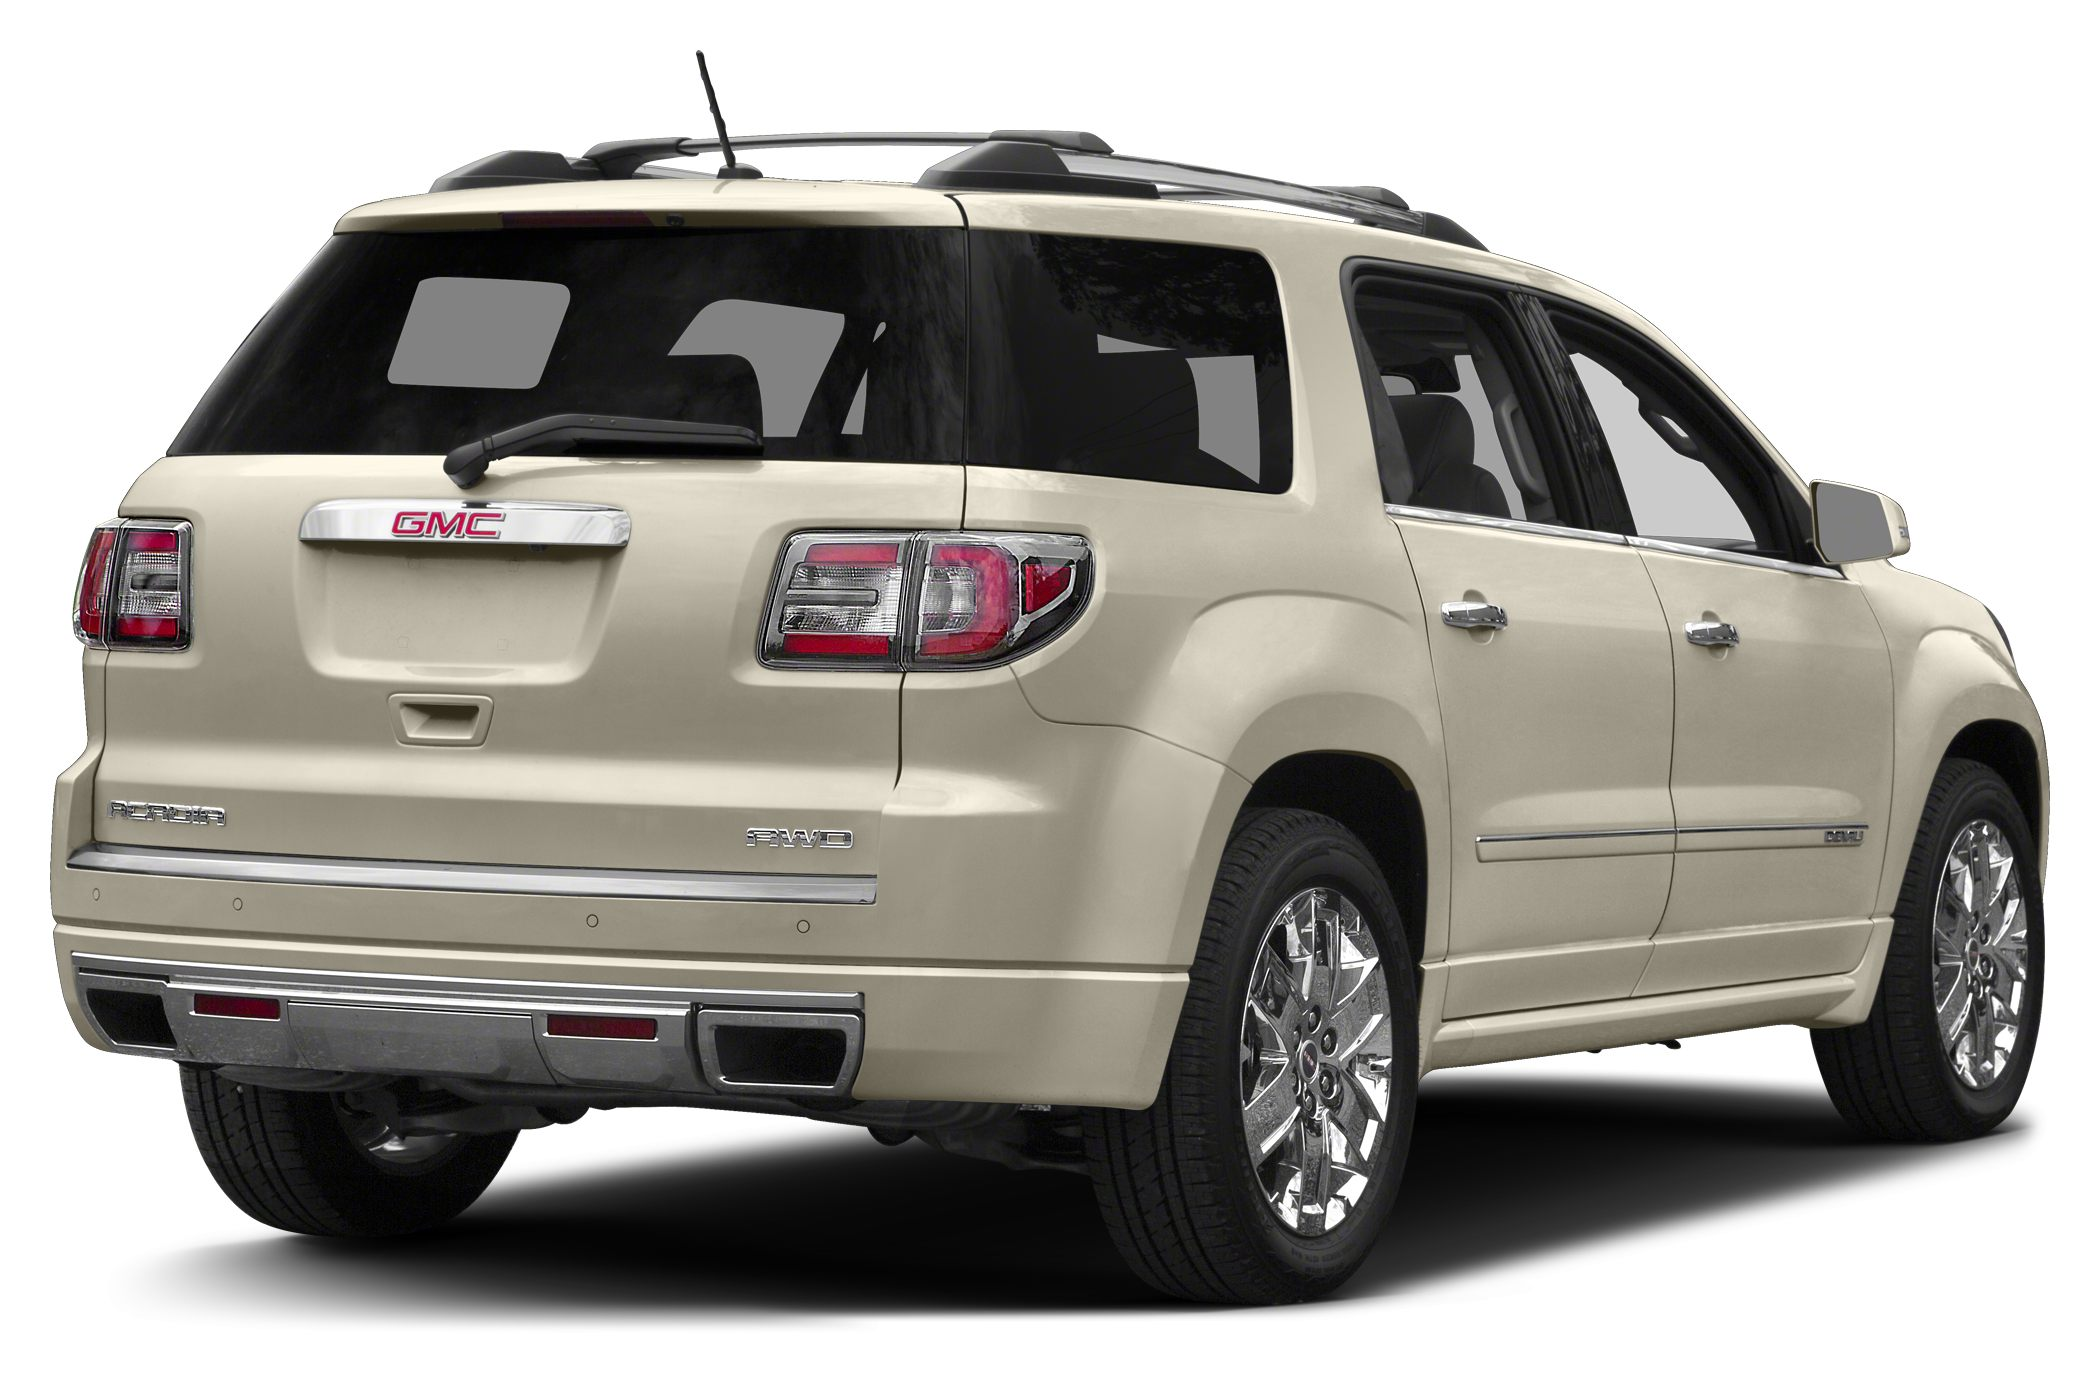 2015 Gmc Acadia Denali Cars And Vehicles Daytona Beach